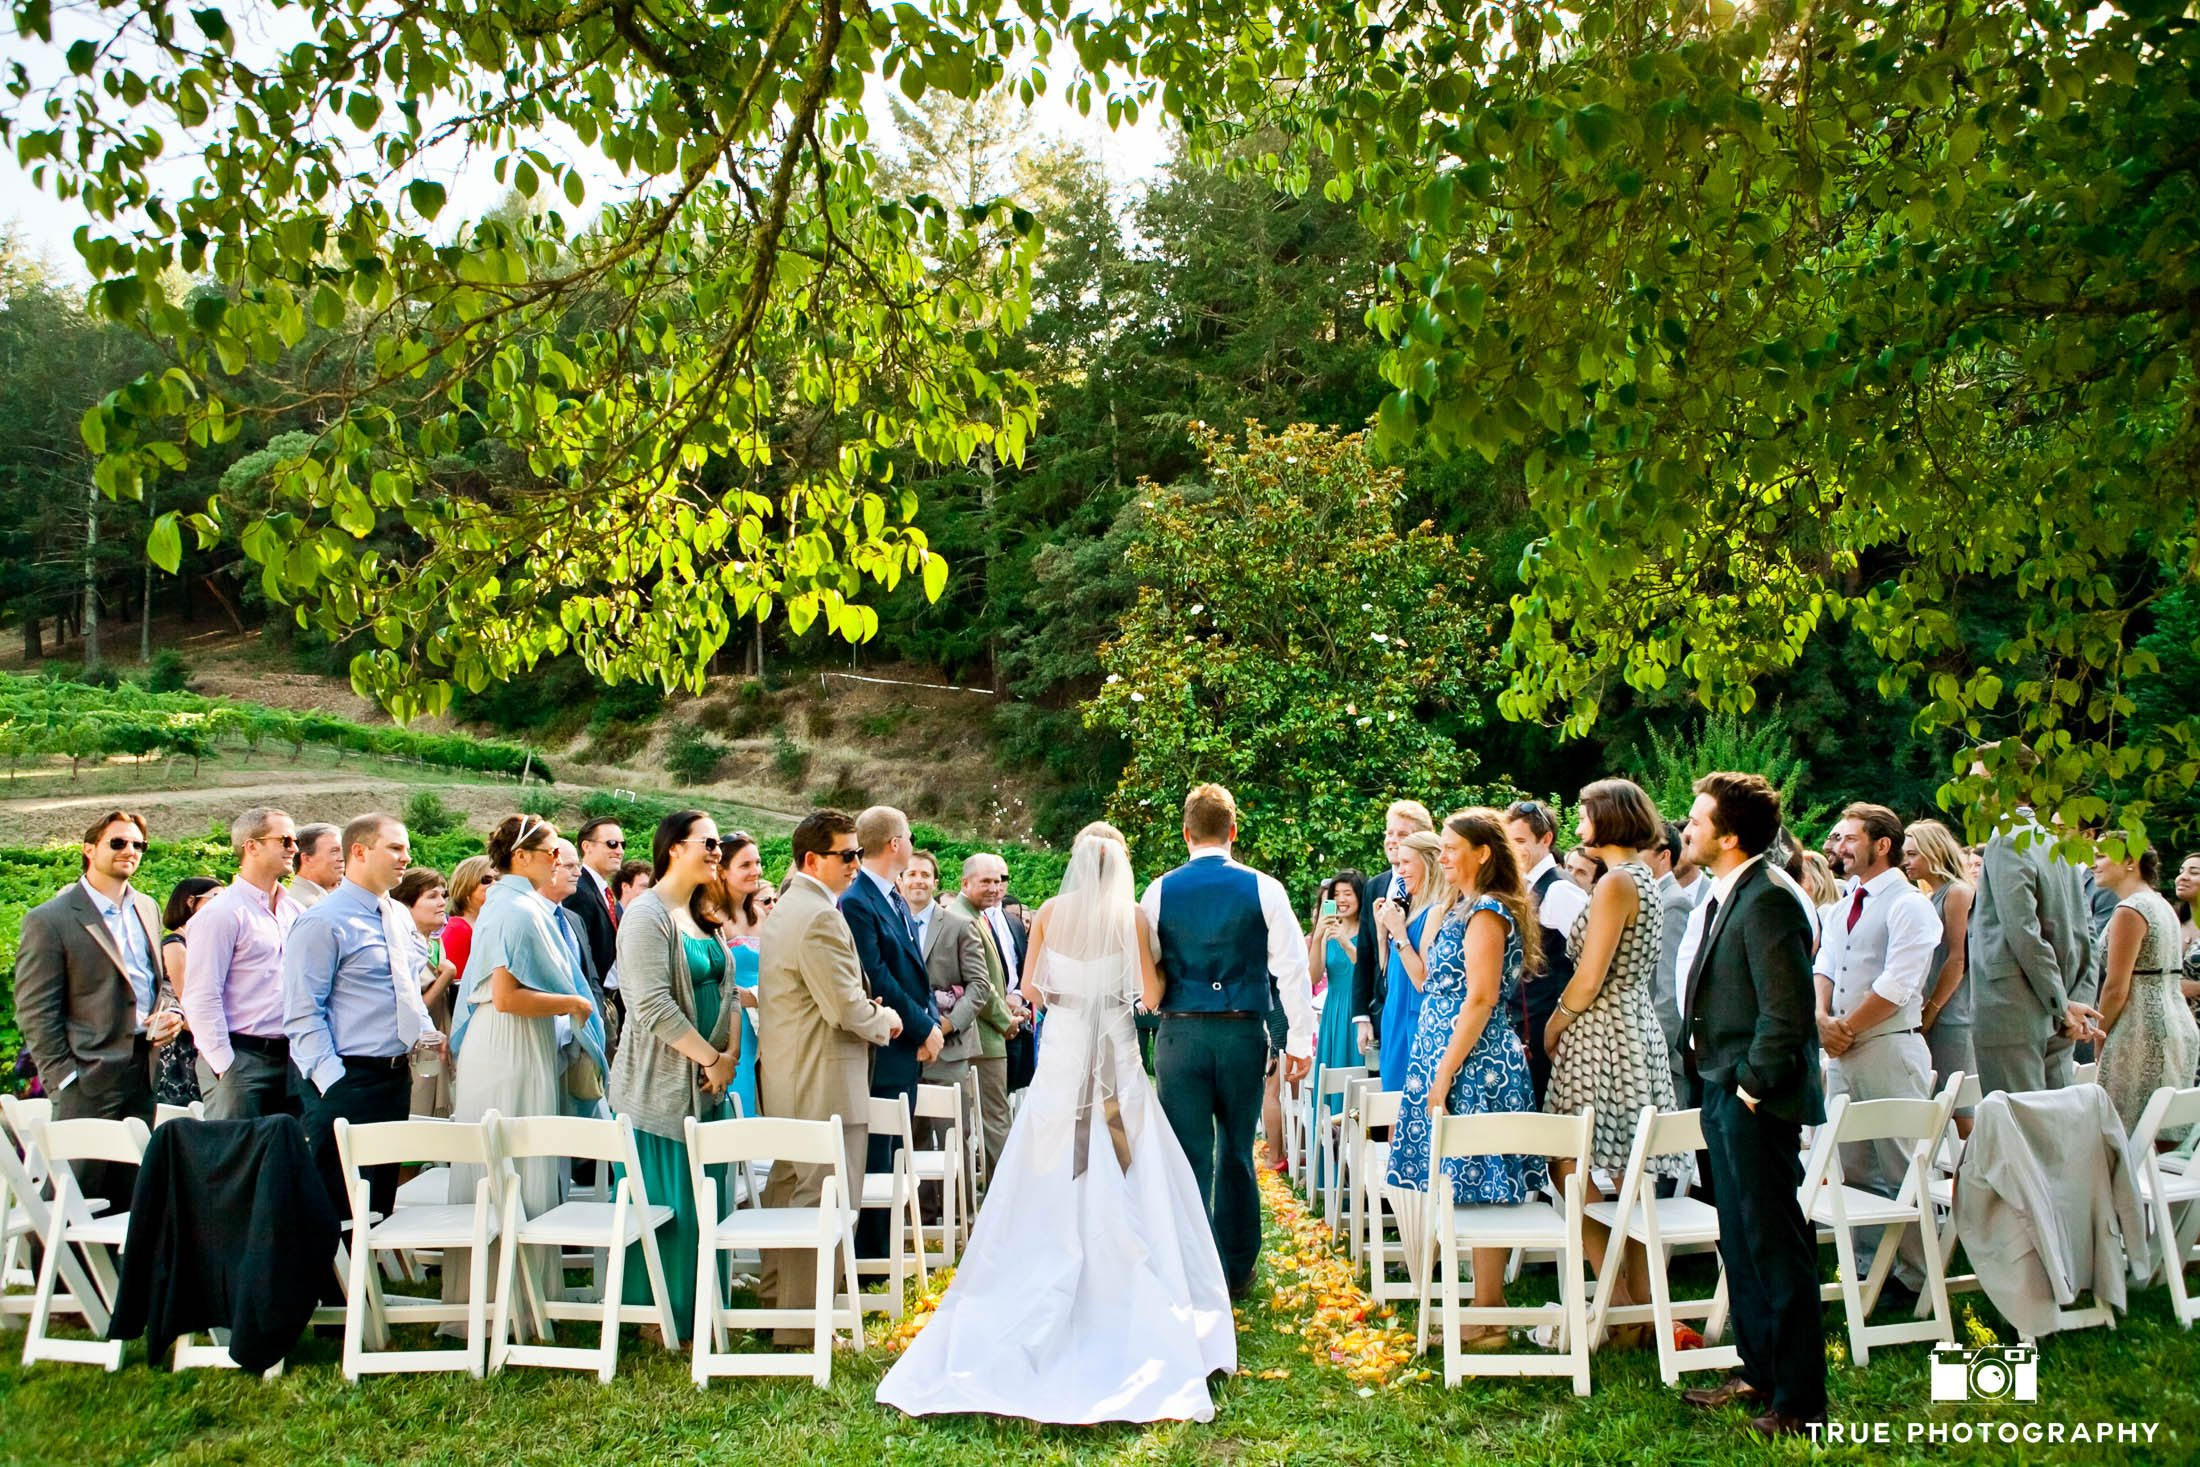 Bride and Groom walk down aisle together at vineyard